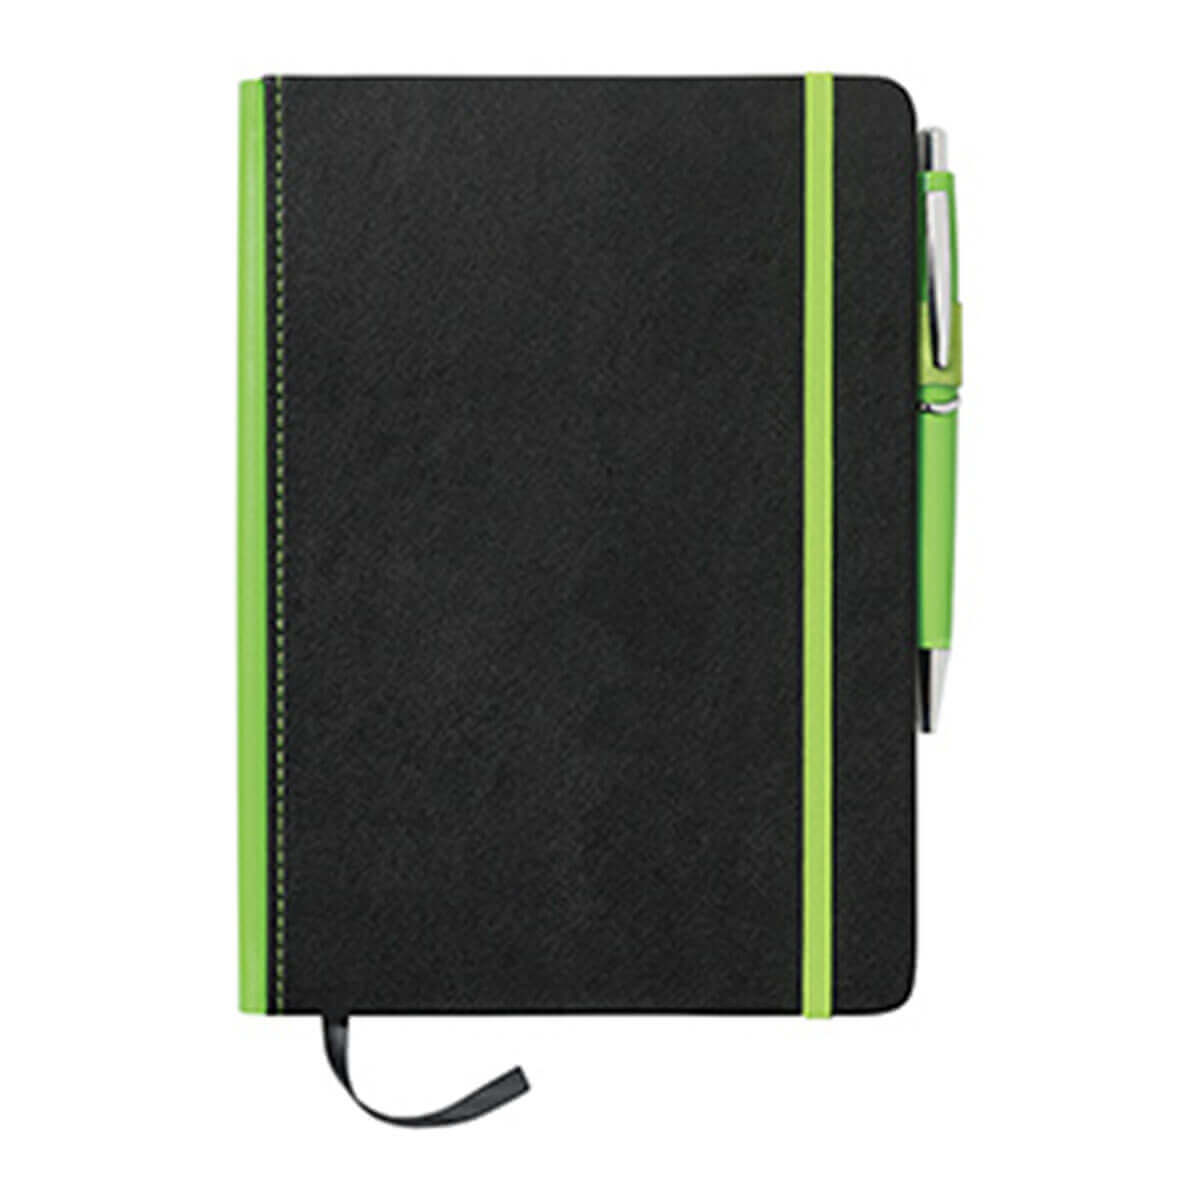 A5 Barranco JournalBook with Coloured Spine-Green